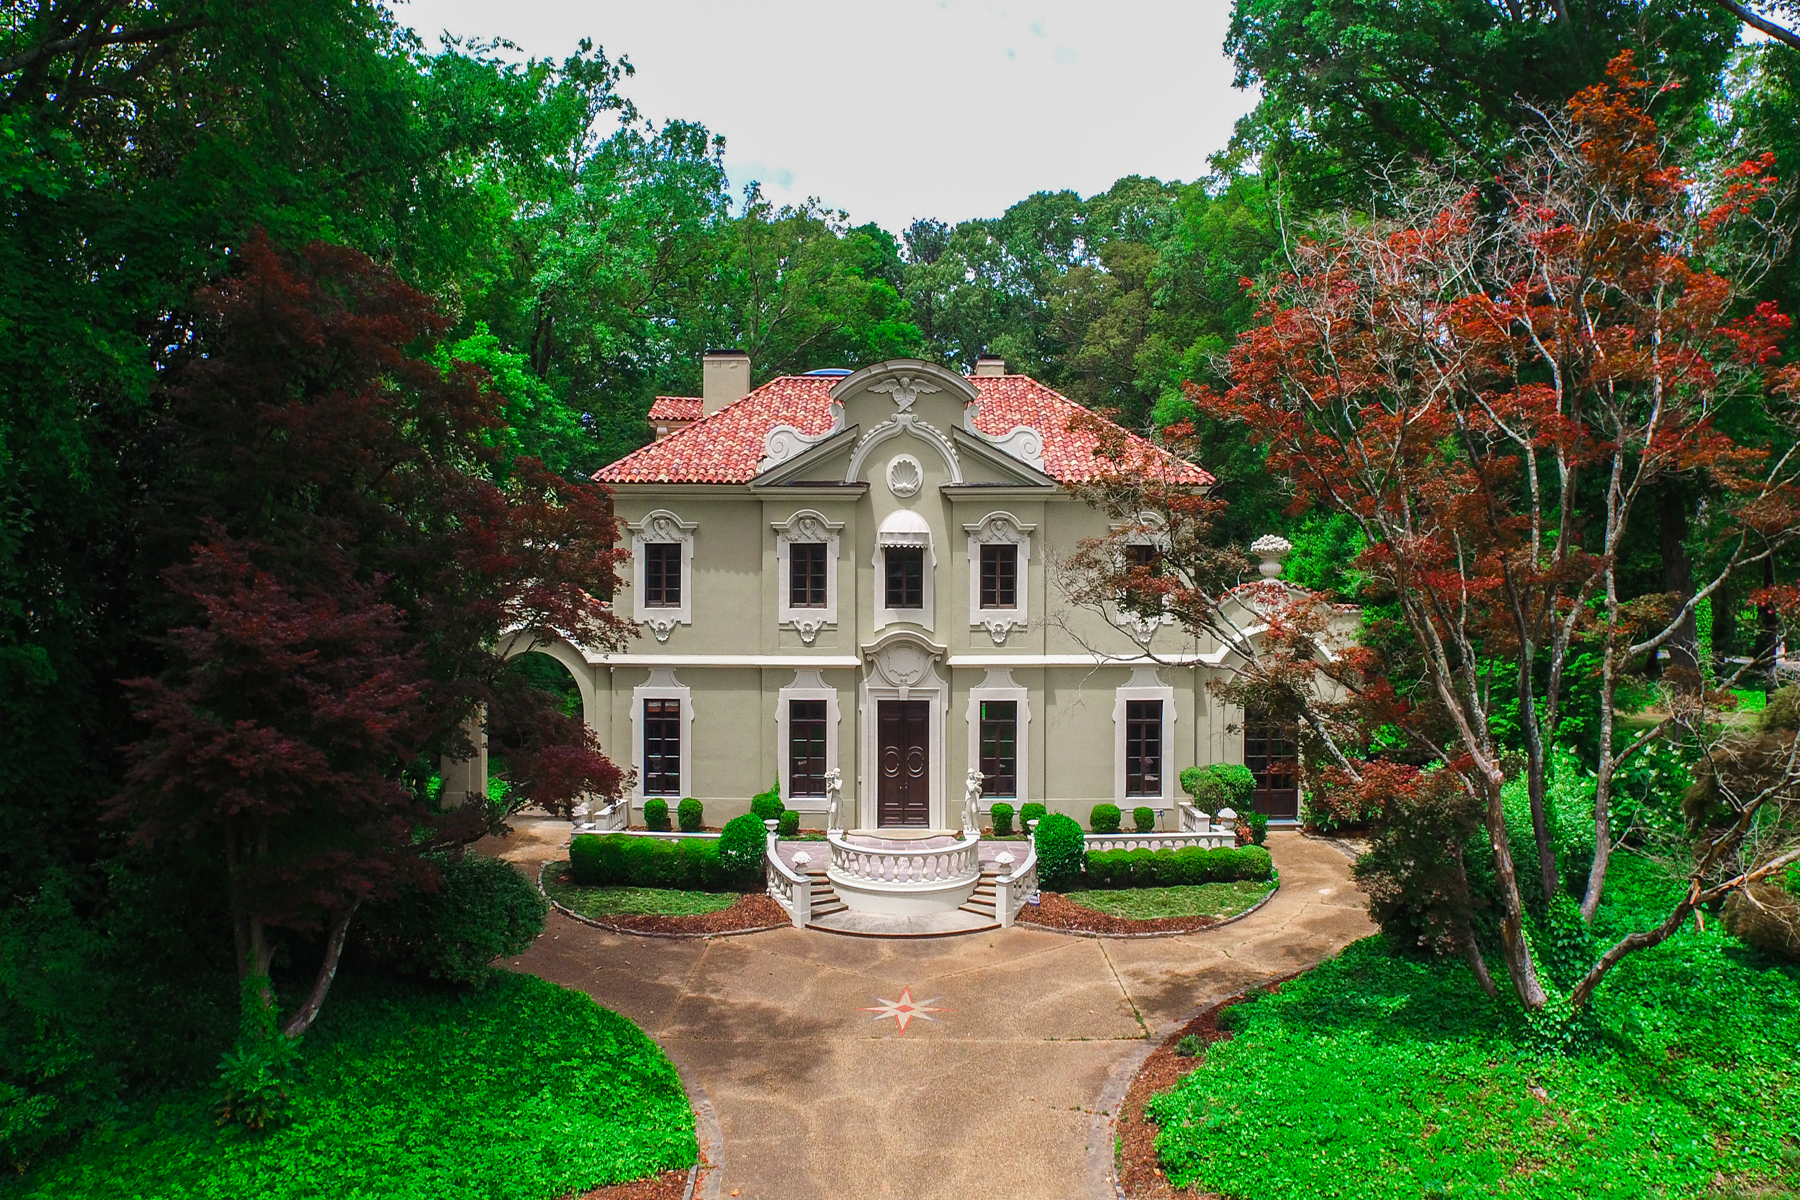 Moradia para Venda às Classic Elegance In Atlanta's Finest Neighborhood 541 W Paces Ferry Road NW Buckhead, Atlanta, Geórgia 30305 Estados Unidos